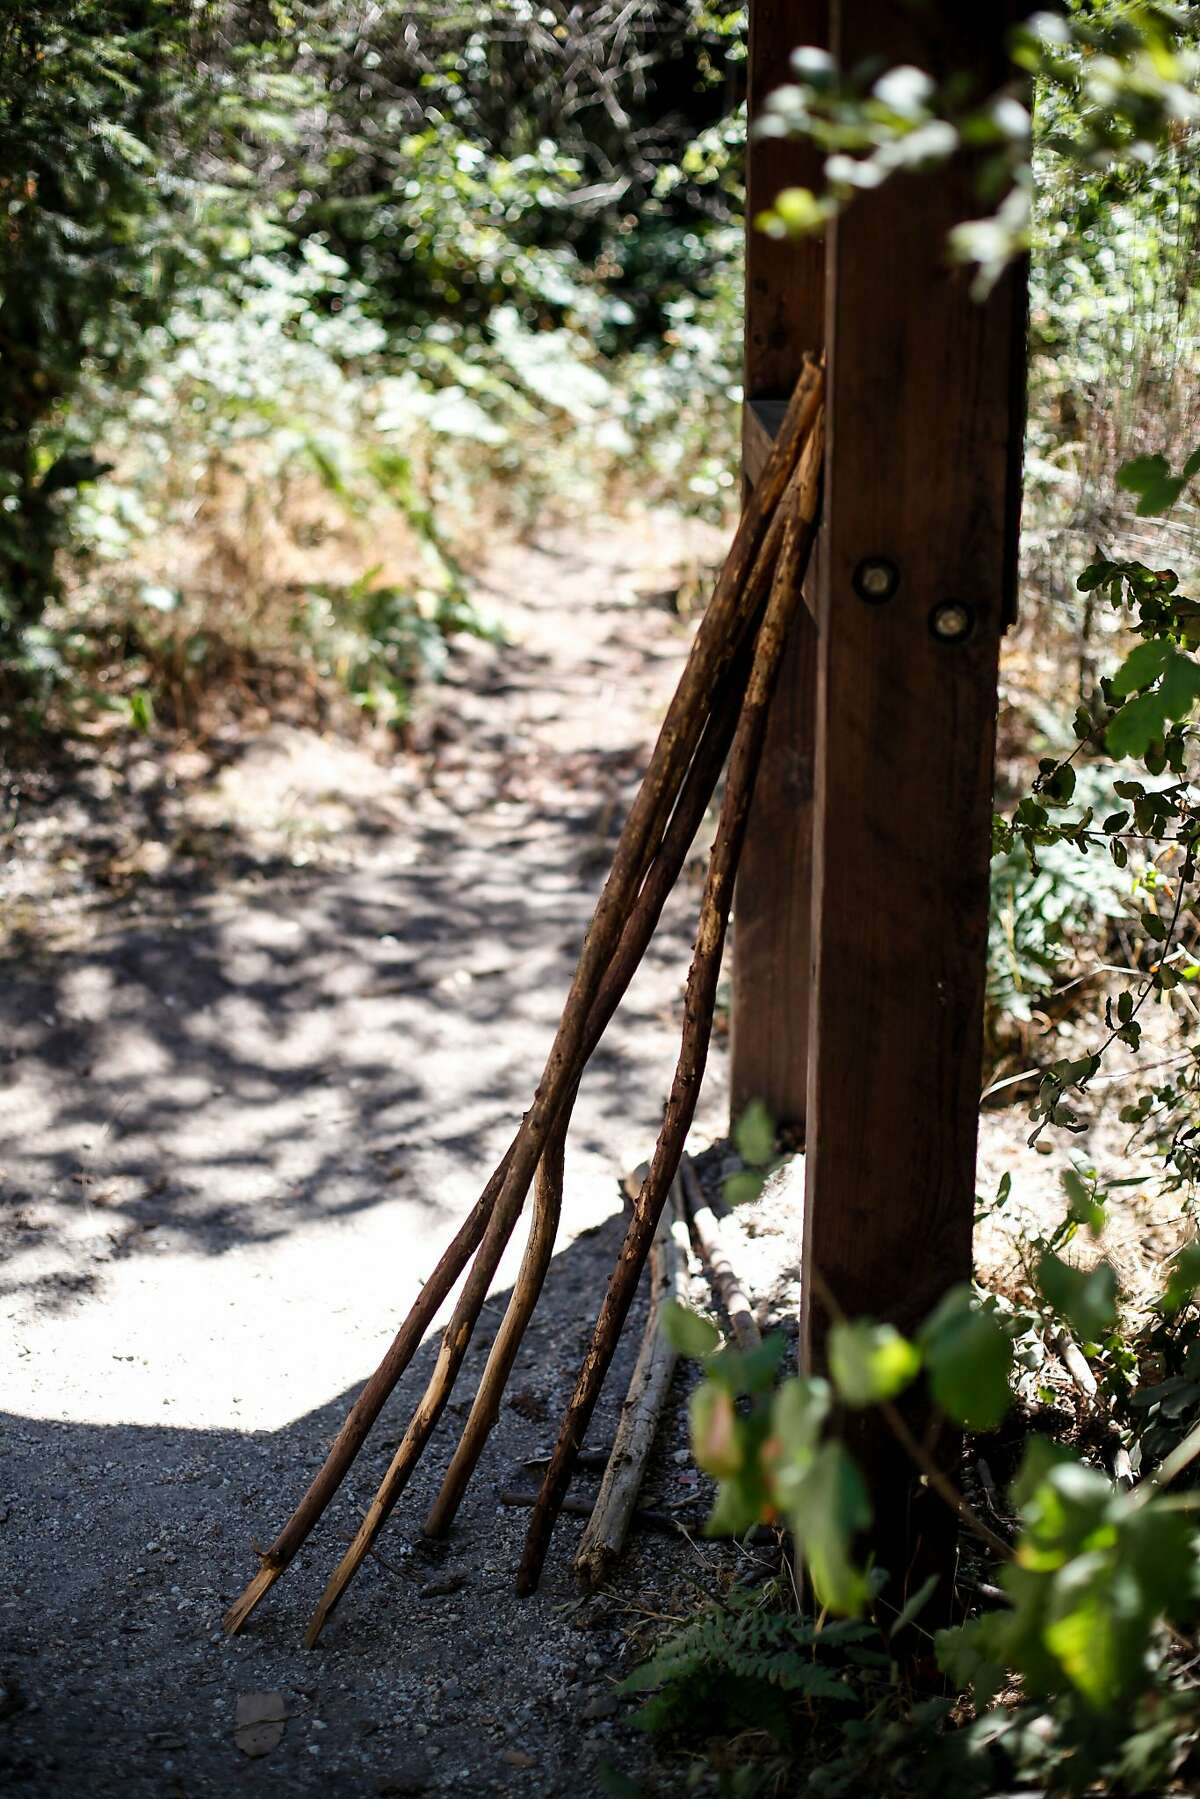 Walking sticks at Henry Cowell Redwood State Park in Felton, Calif., on Friday, July 3, 2015.